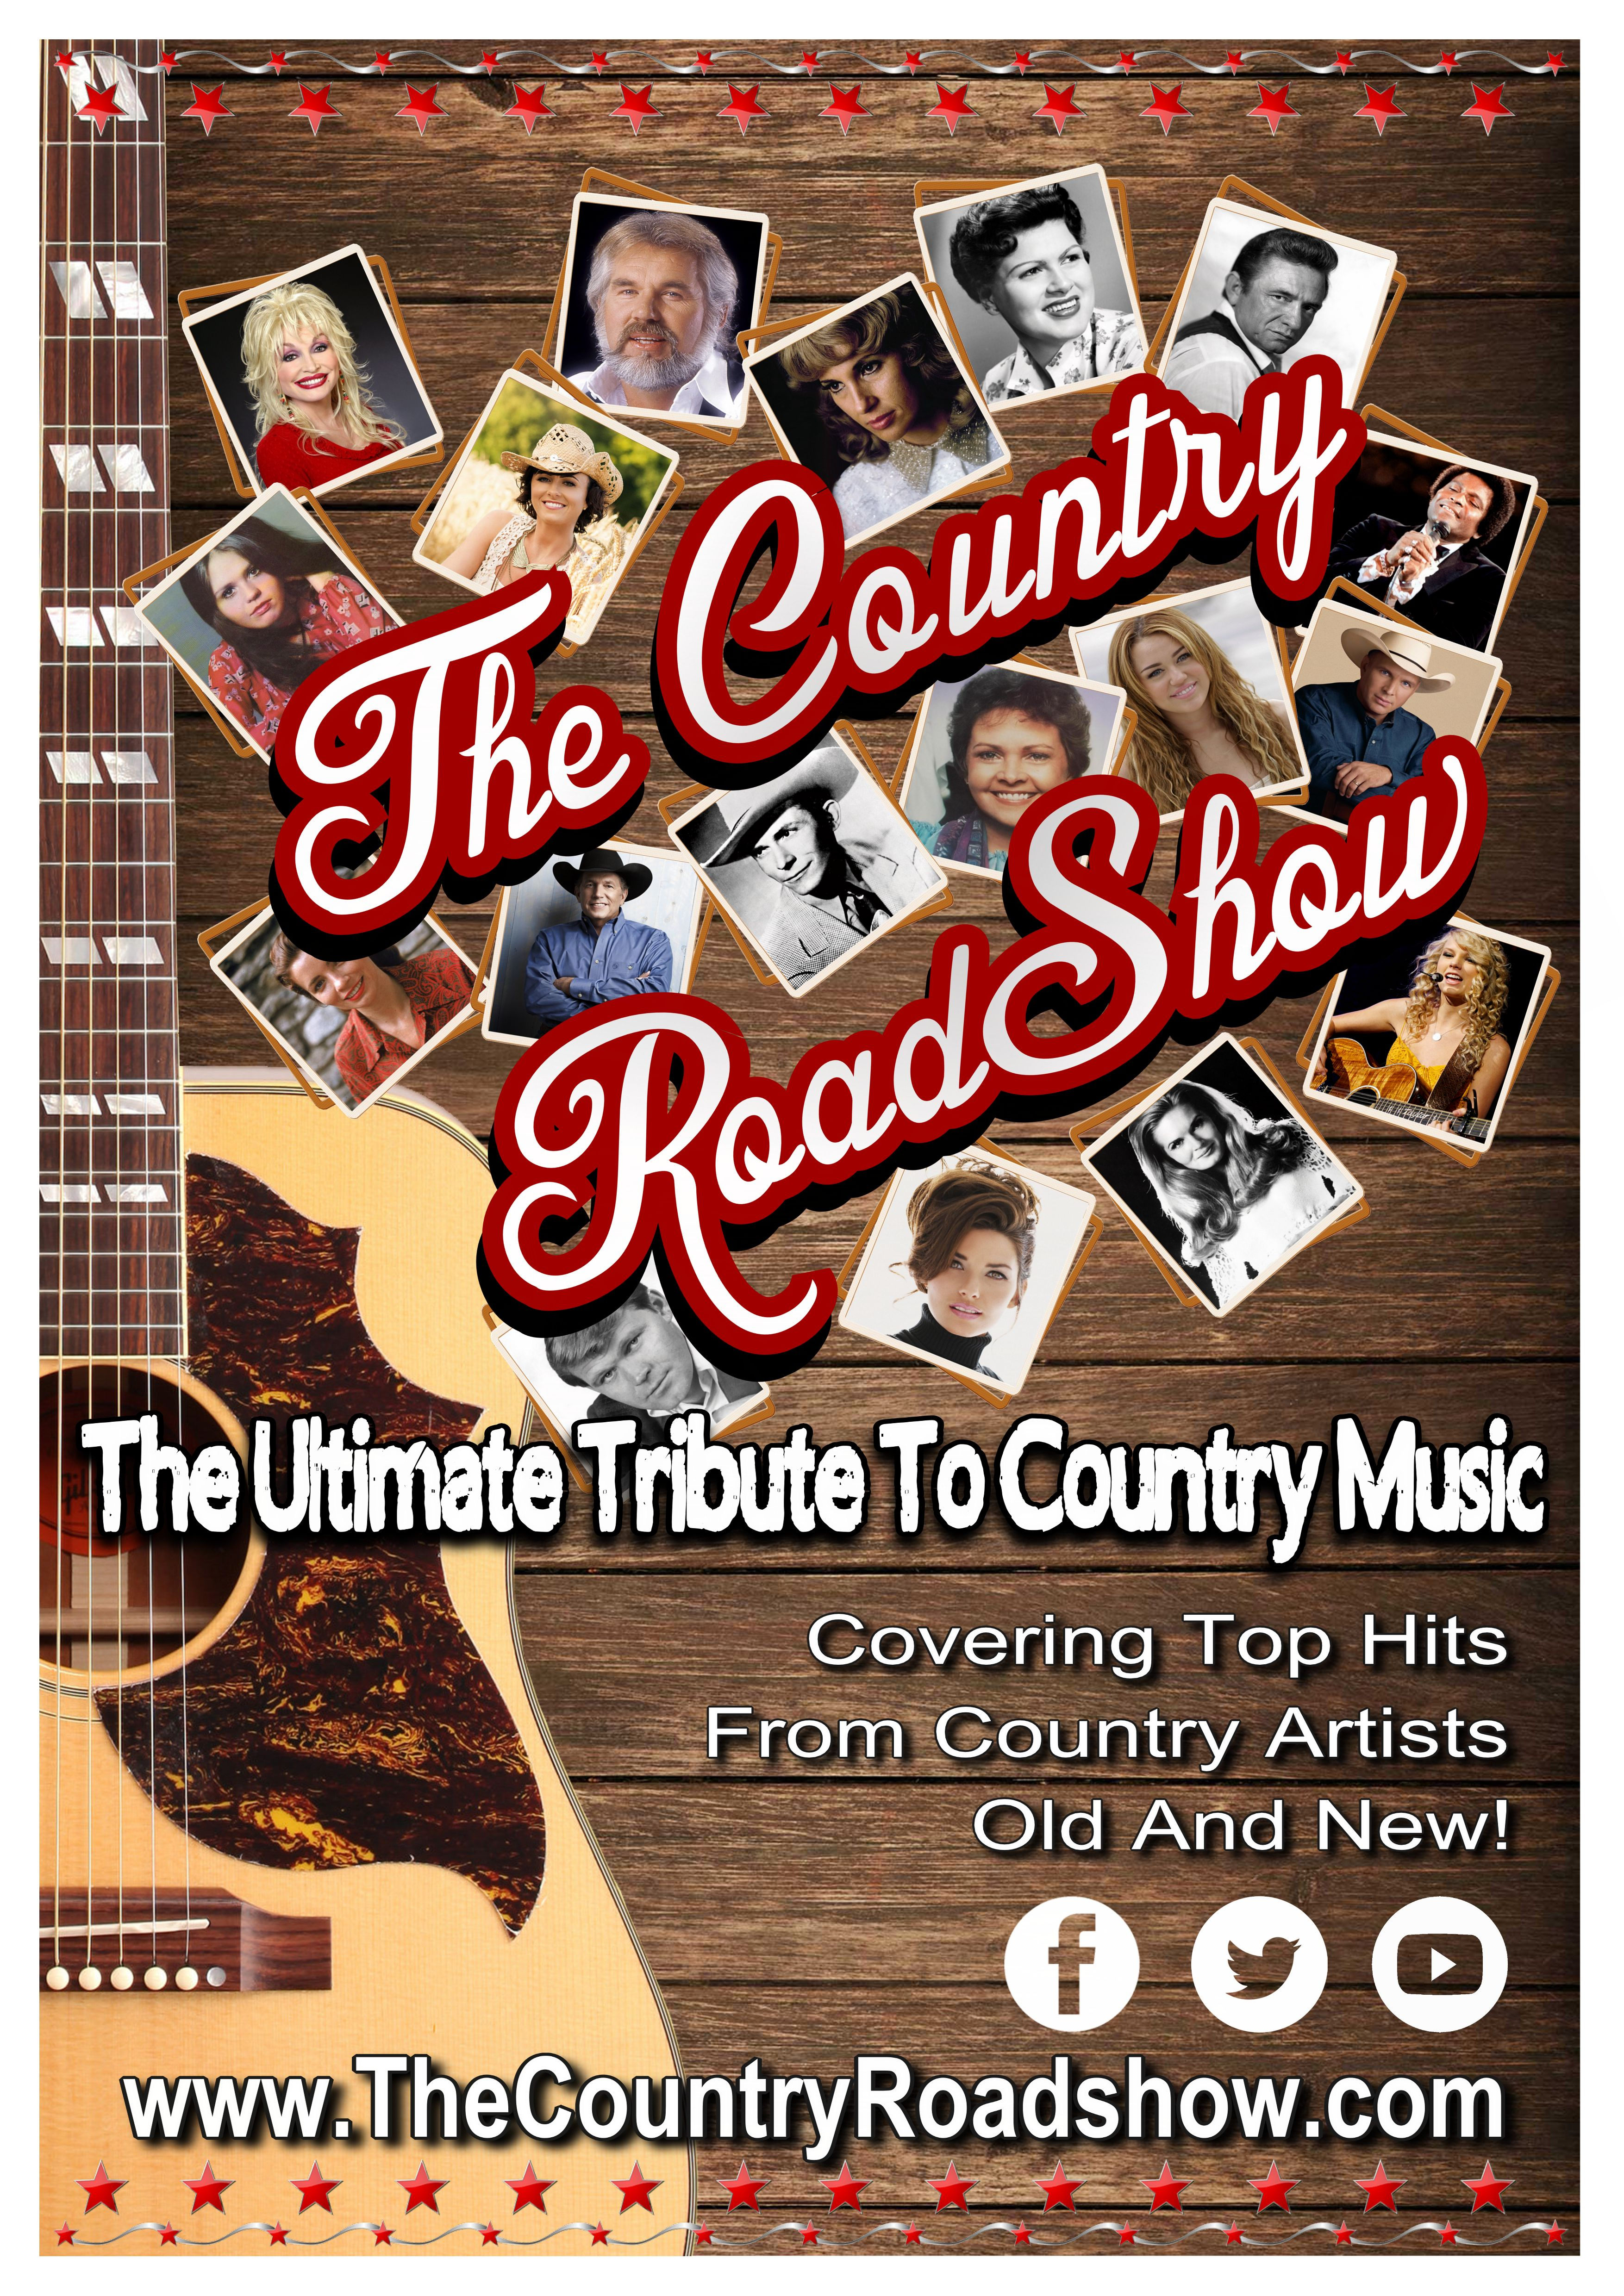 The Country Roadshow Flyer